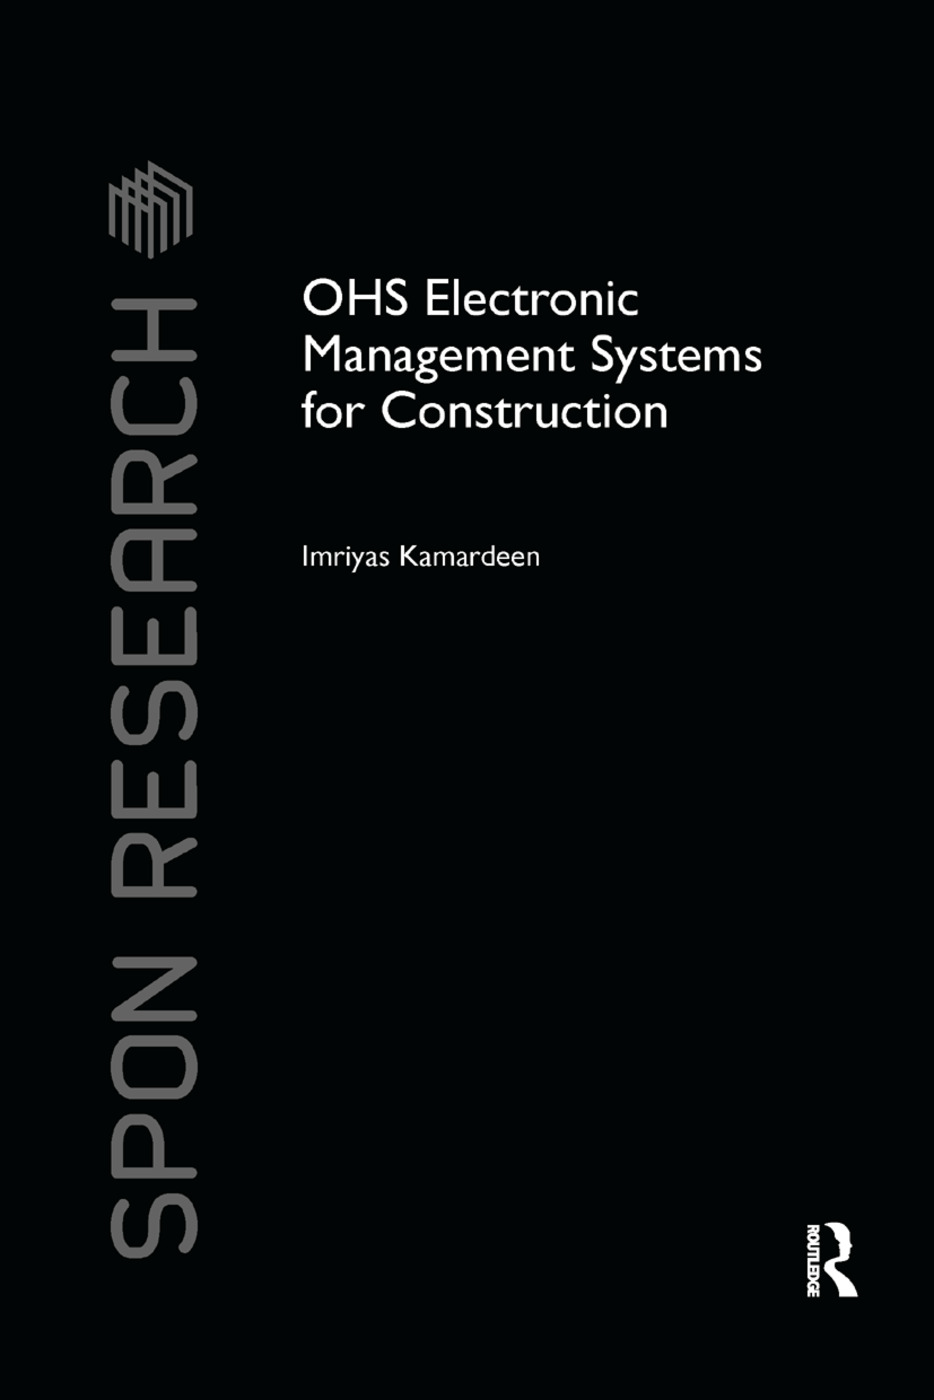 OHS Electronic Management Systems for Construction